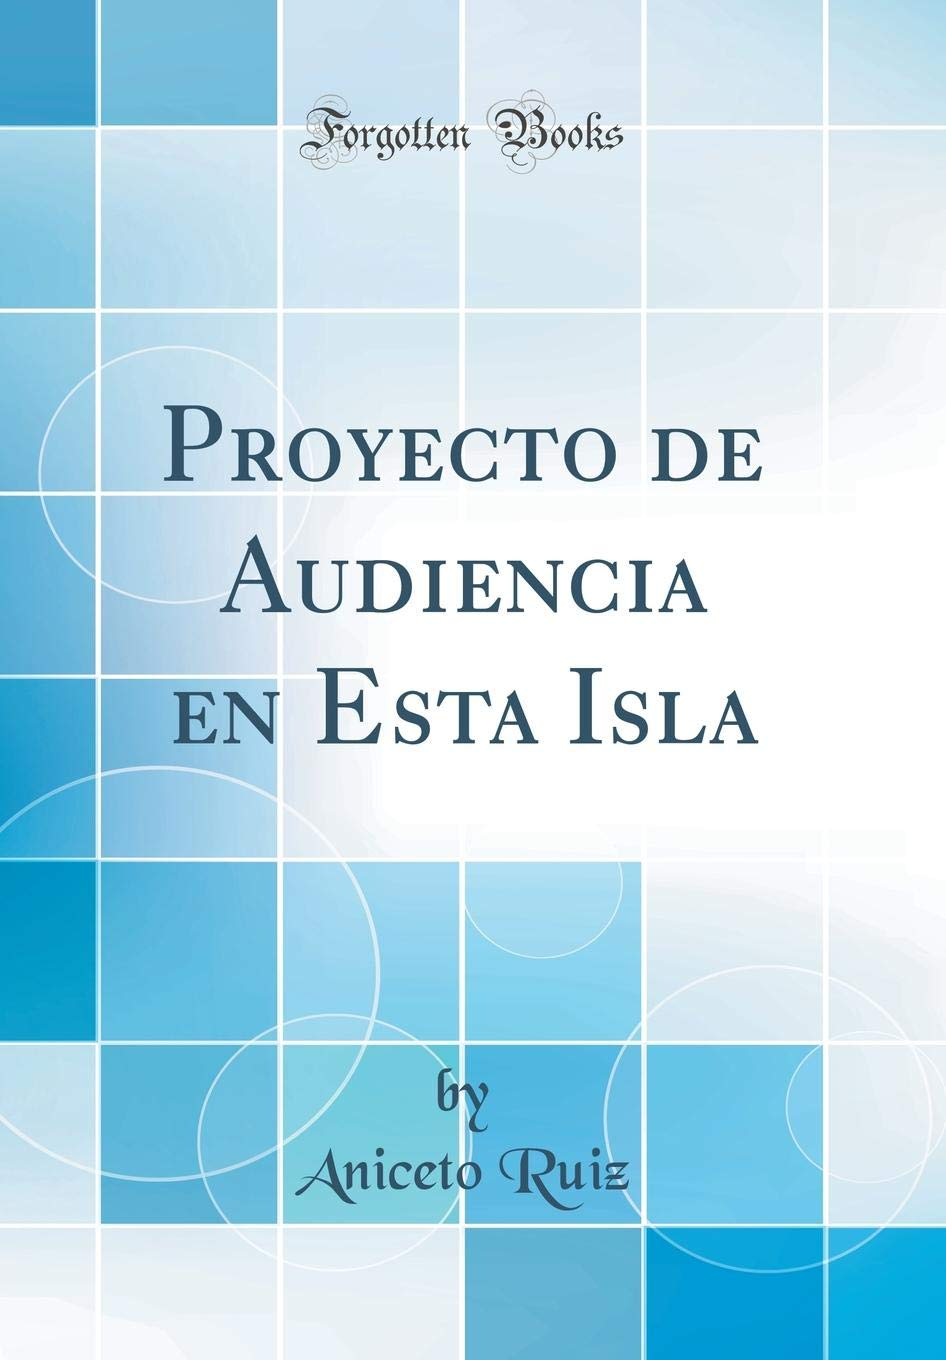 Proyecto de Audiencia en Esta Isla (Classic Reprint) (Spanish Edition): Aniceto Ruiz: 9780428664510: Amazon.com: Books